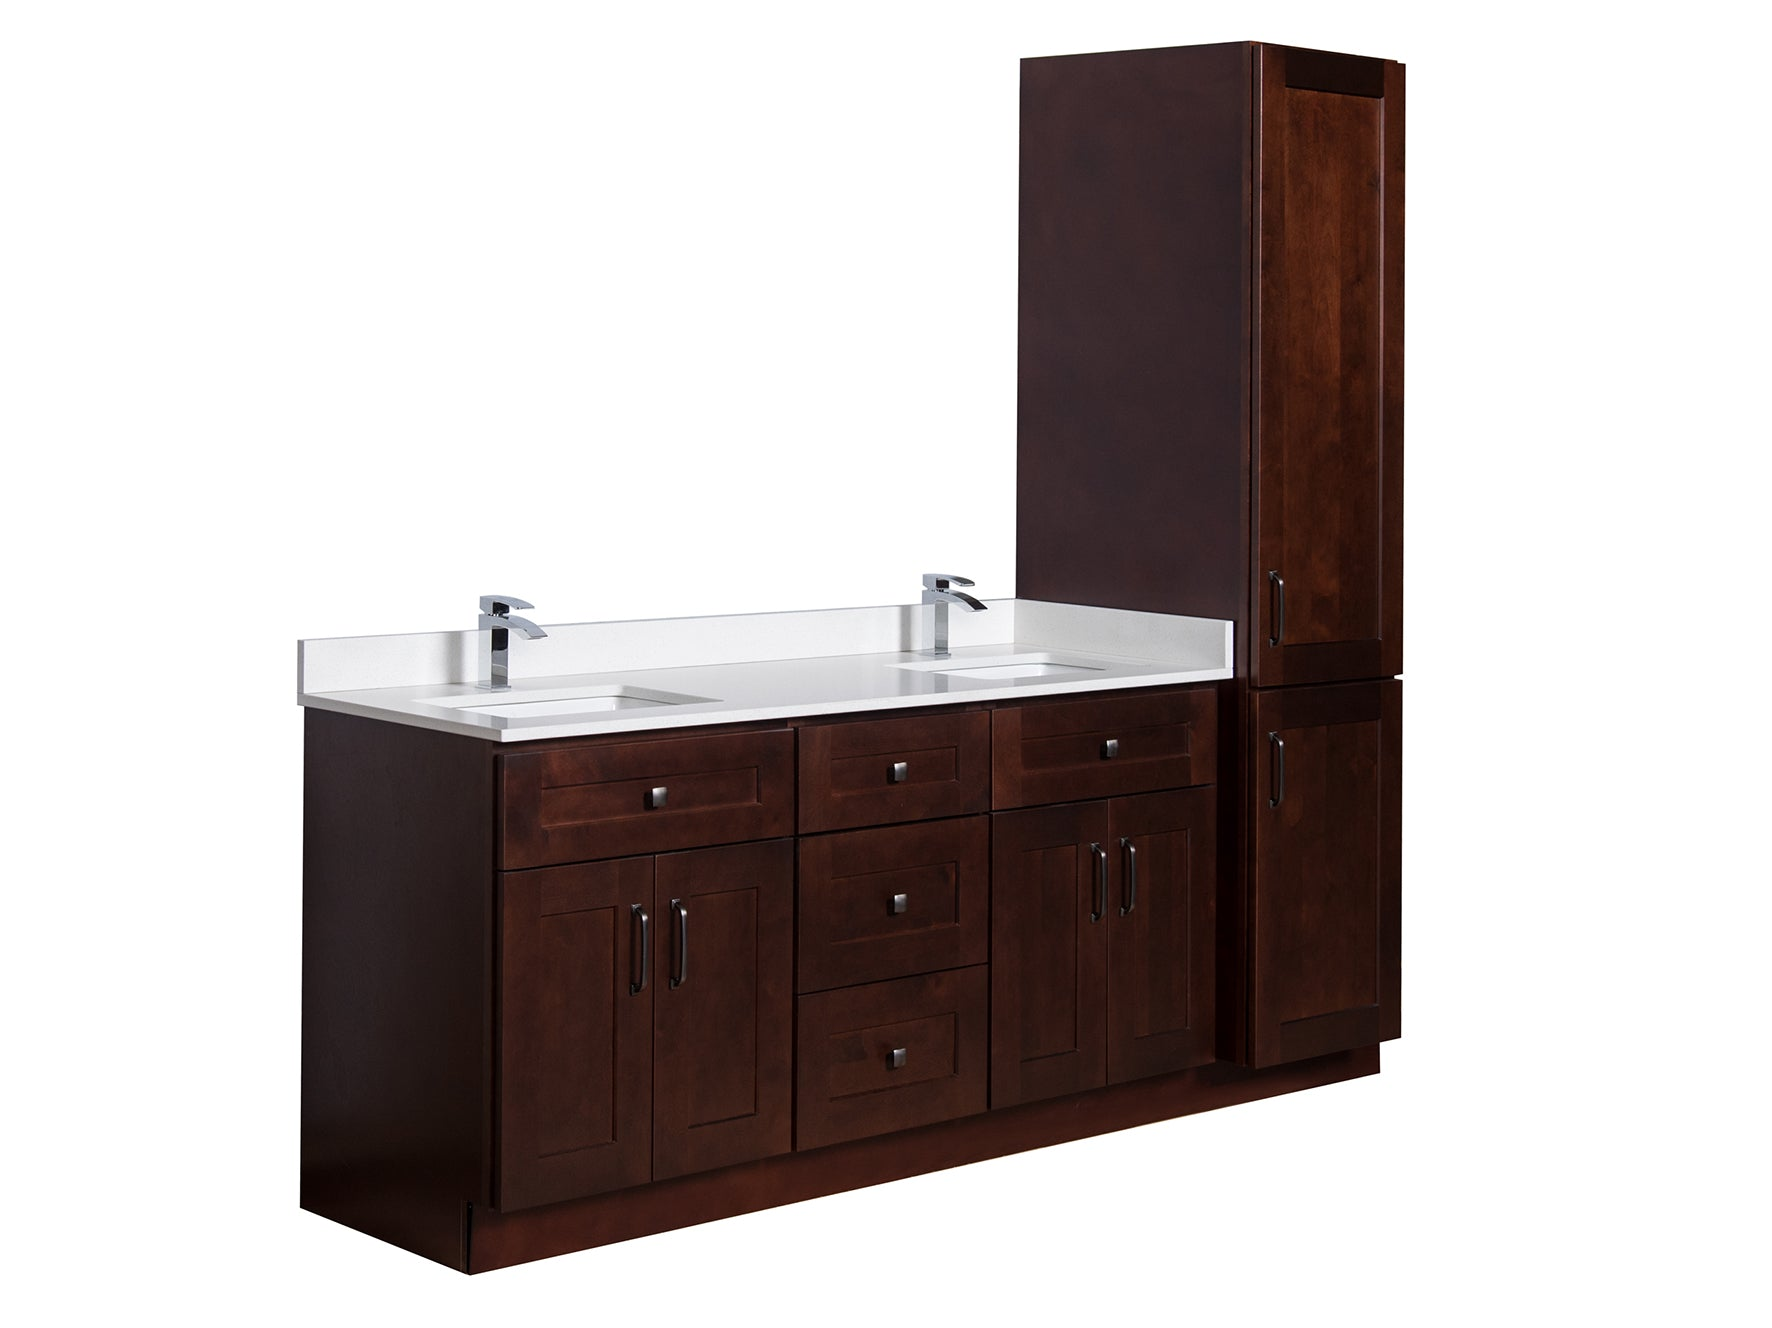 Bathroom Cabinet Configurations Double Sink Cabinet Extra Drawer Space Broadway Vanities